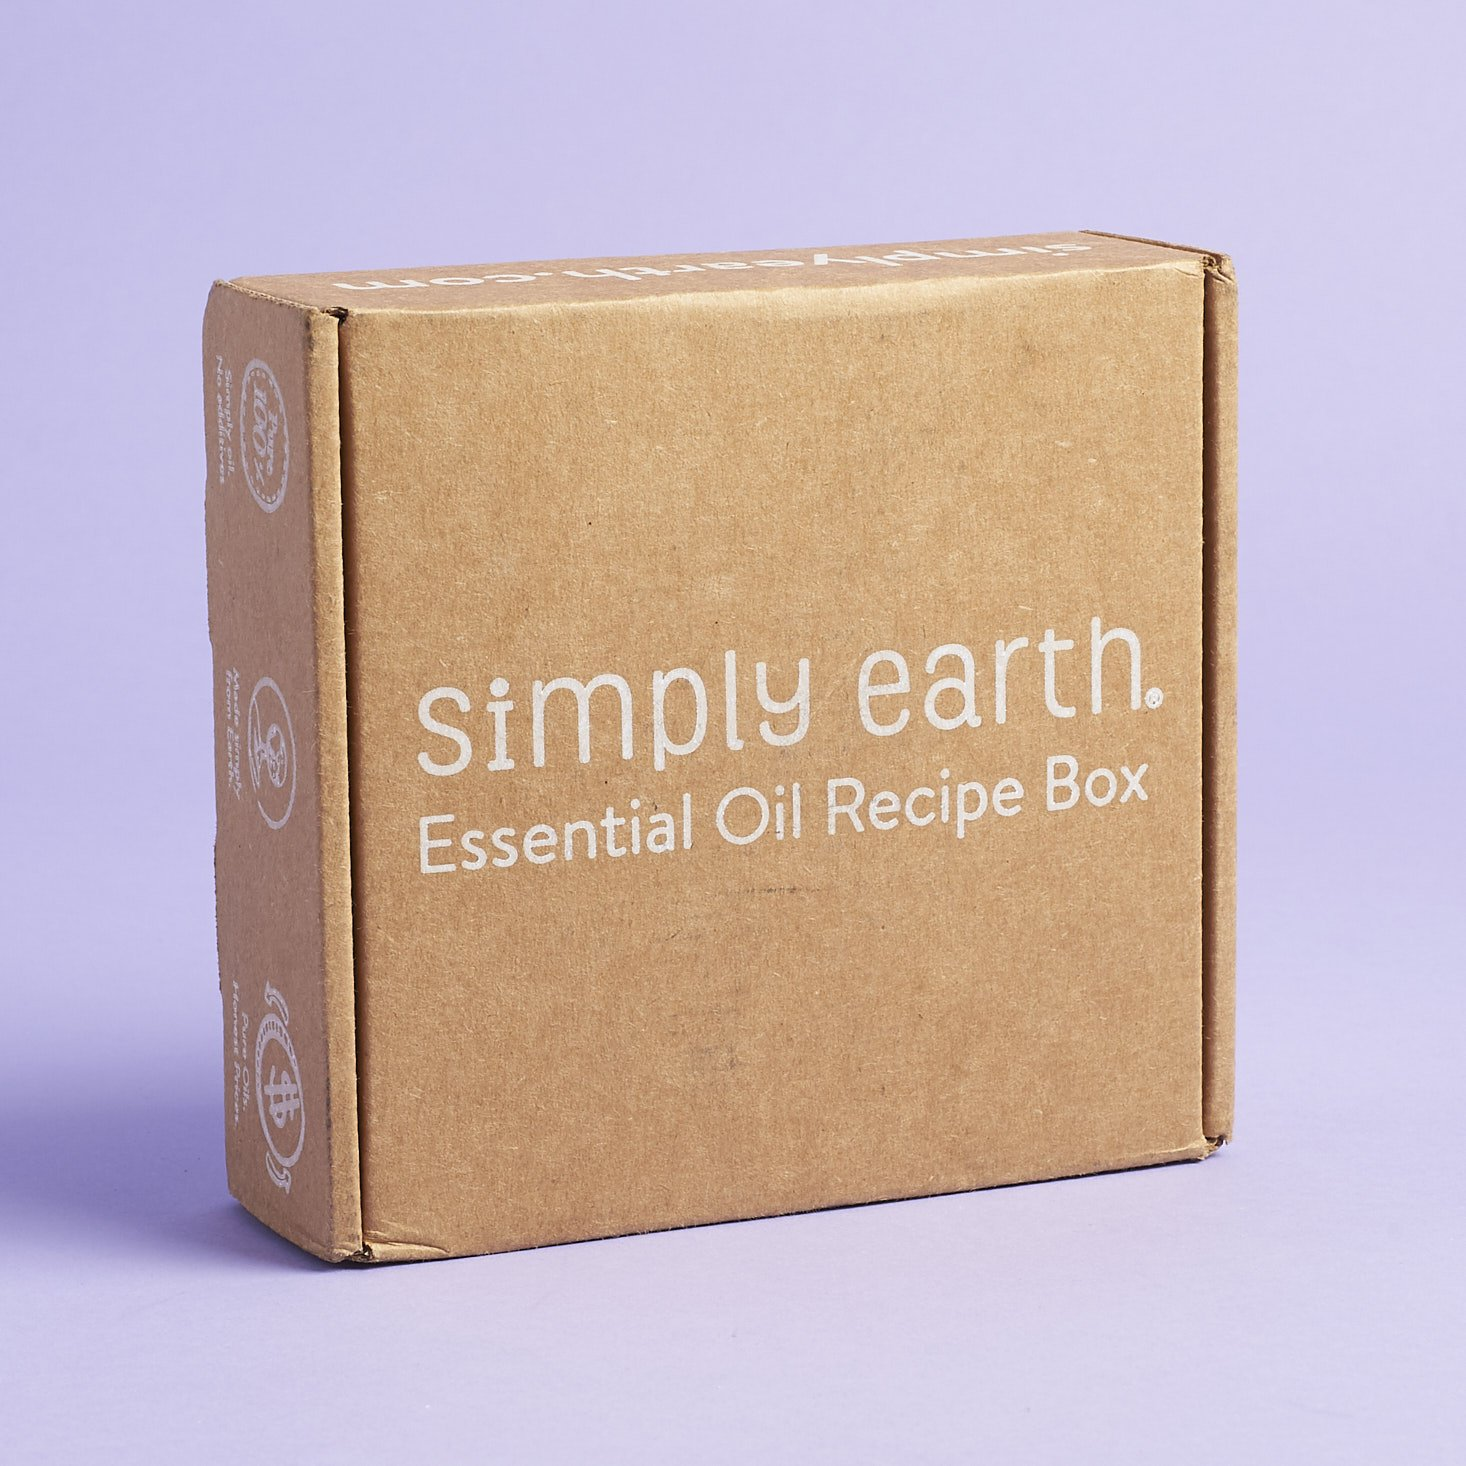 Simply Earth Essential Oil Recipe Box Review + Coupon – Fall Candles